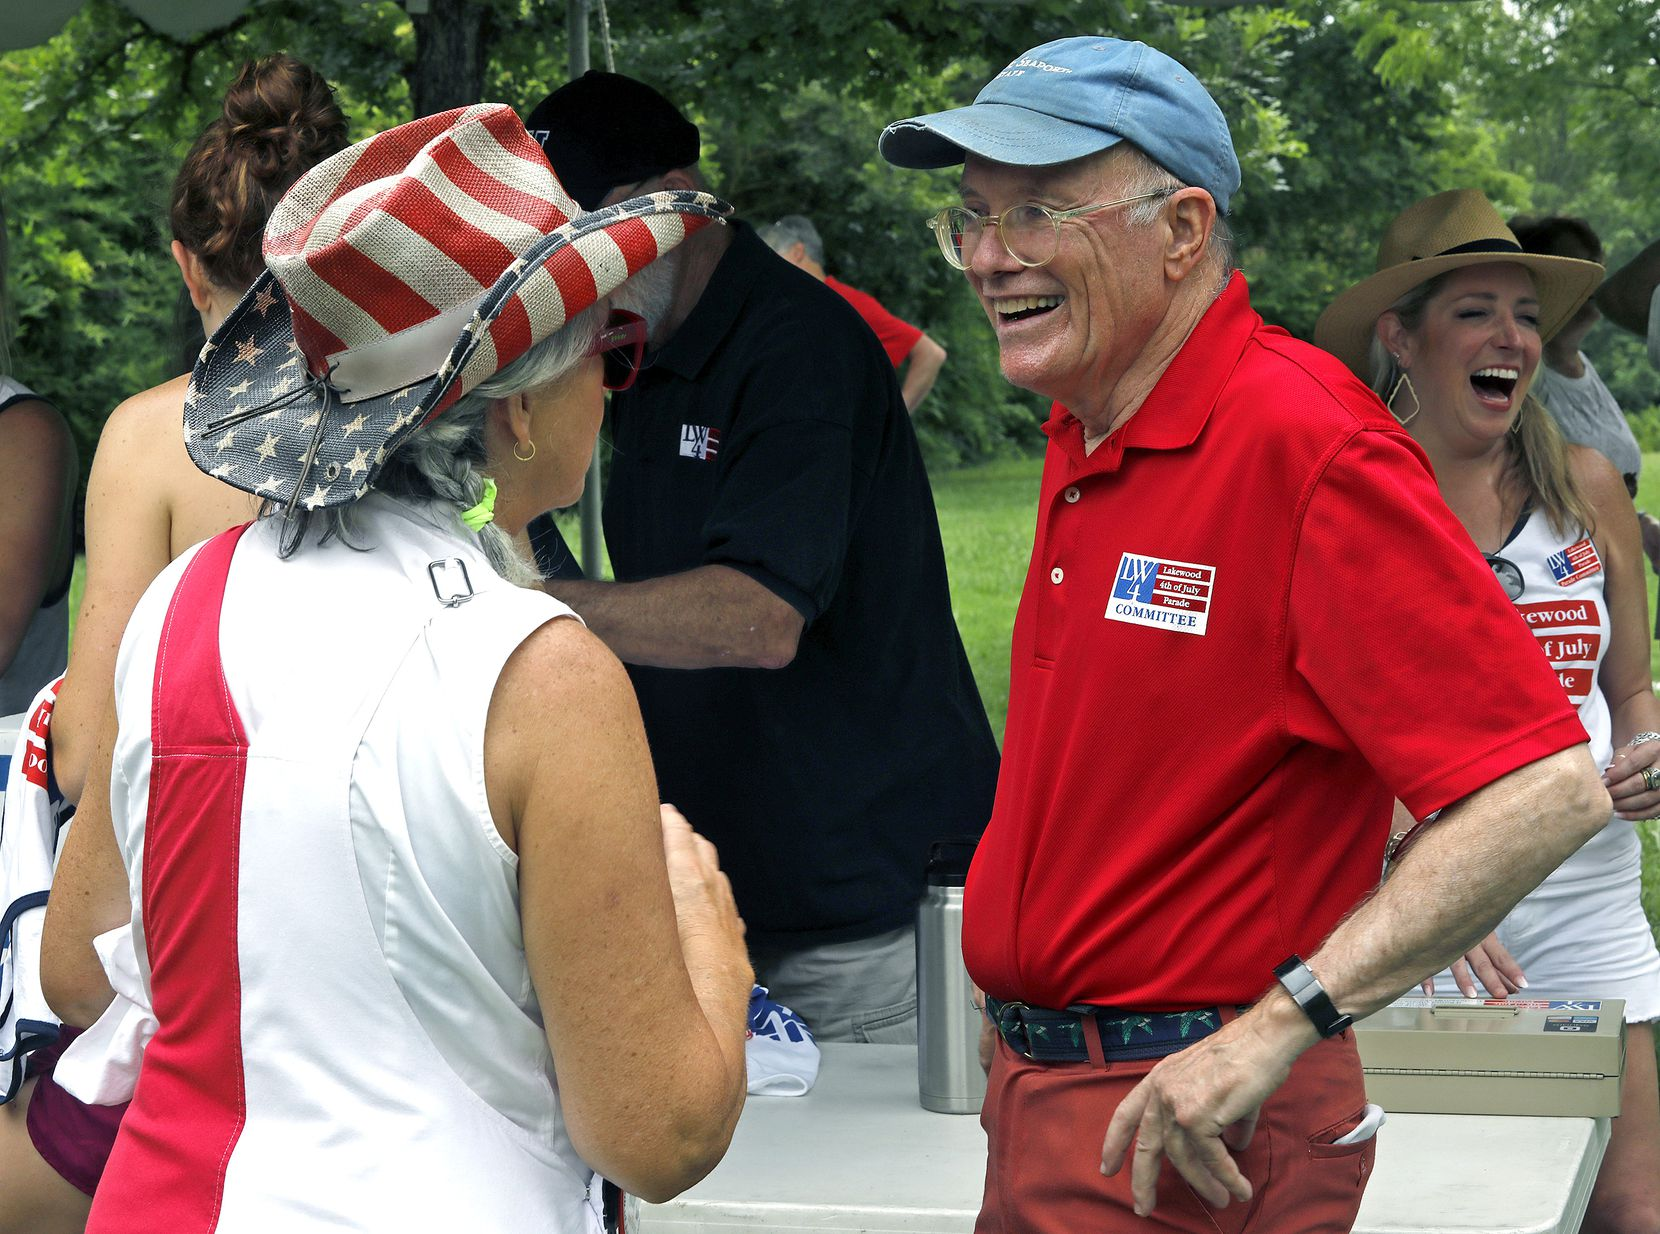 Millie Winston (left) and Al See, members of the Lakewood Parade Committee, talk after the event.